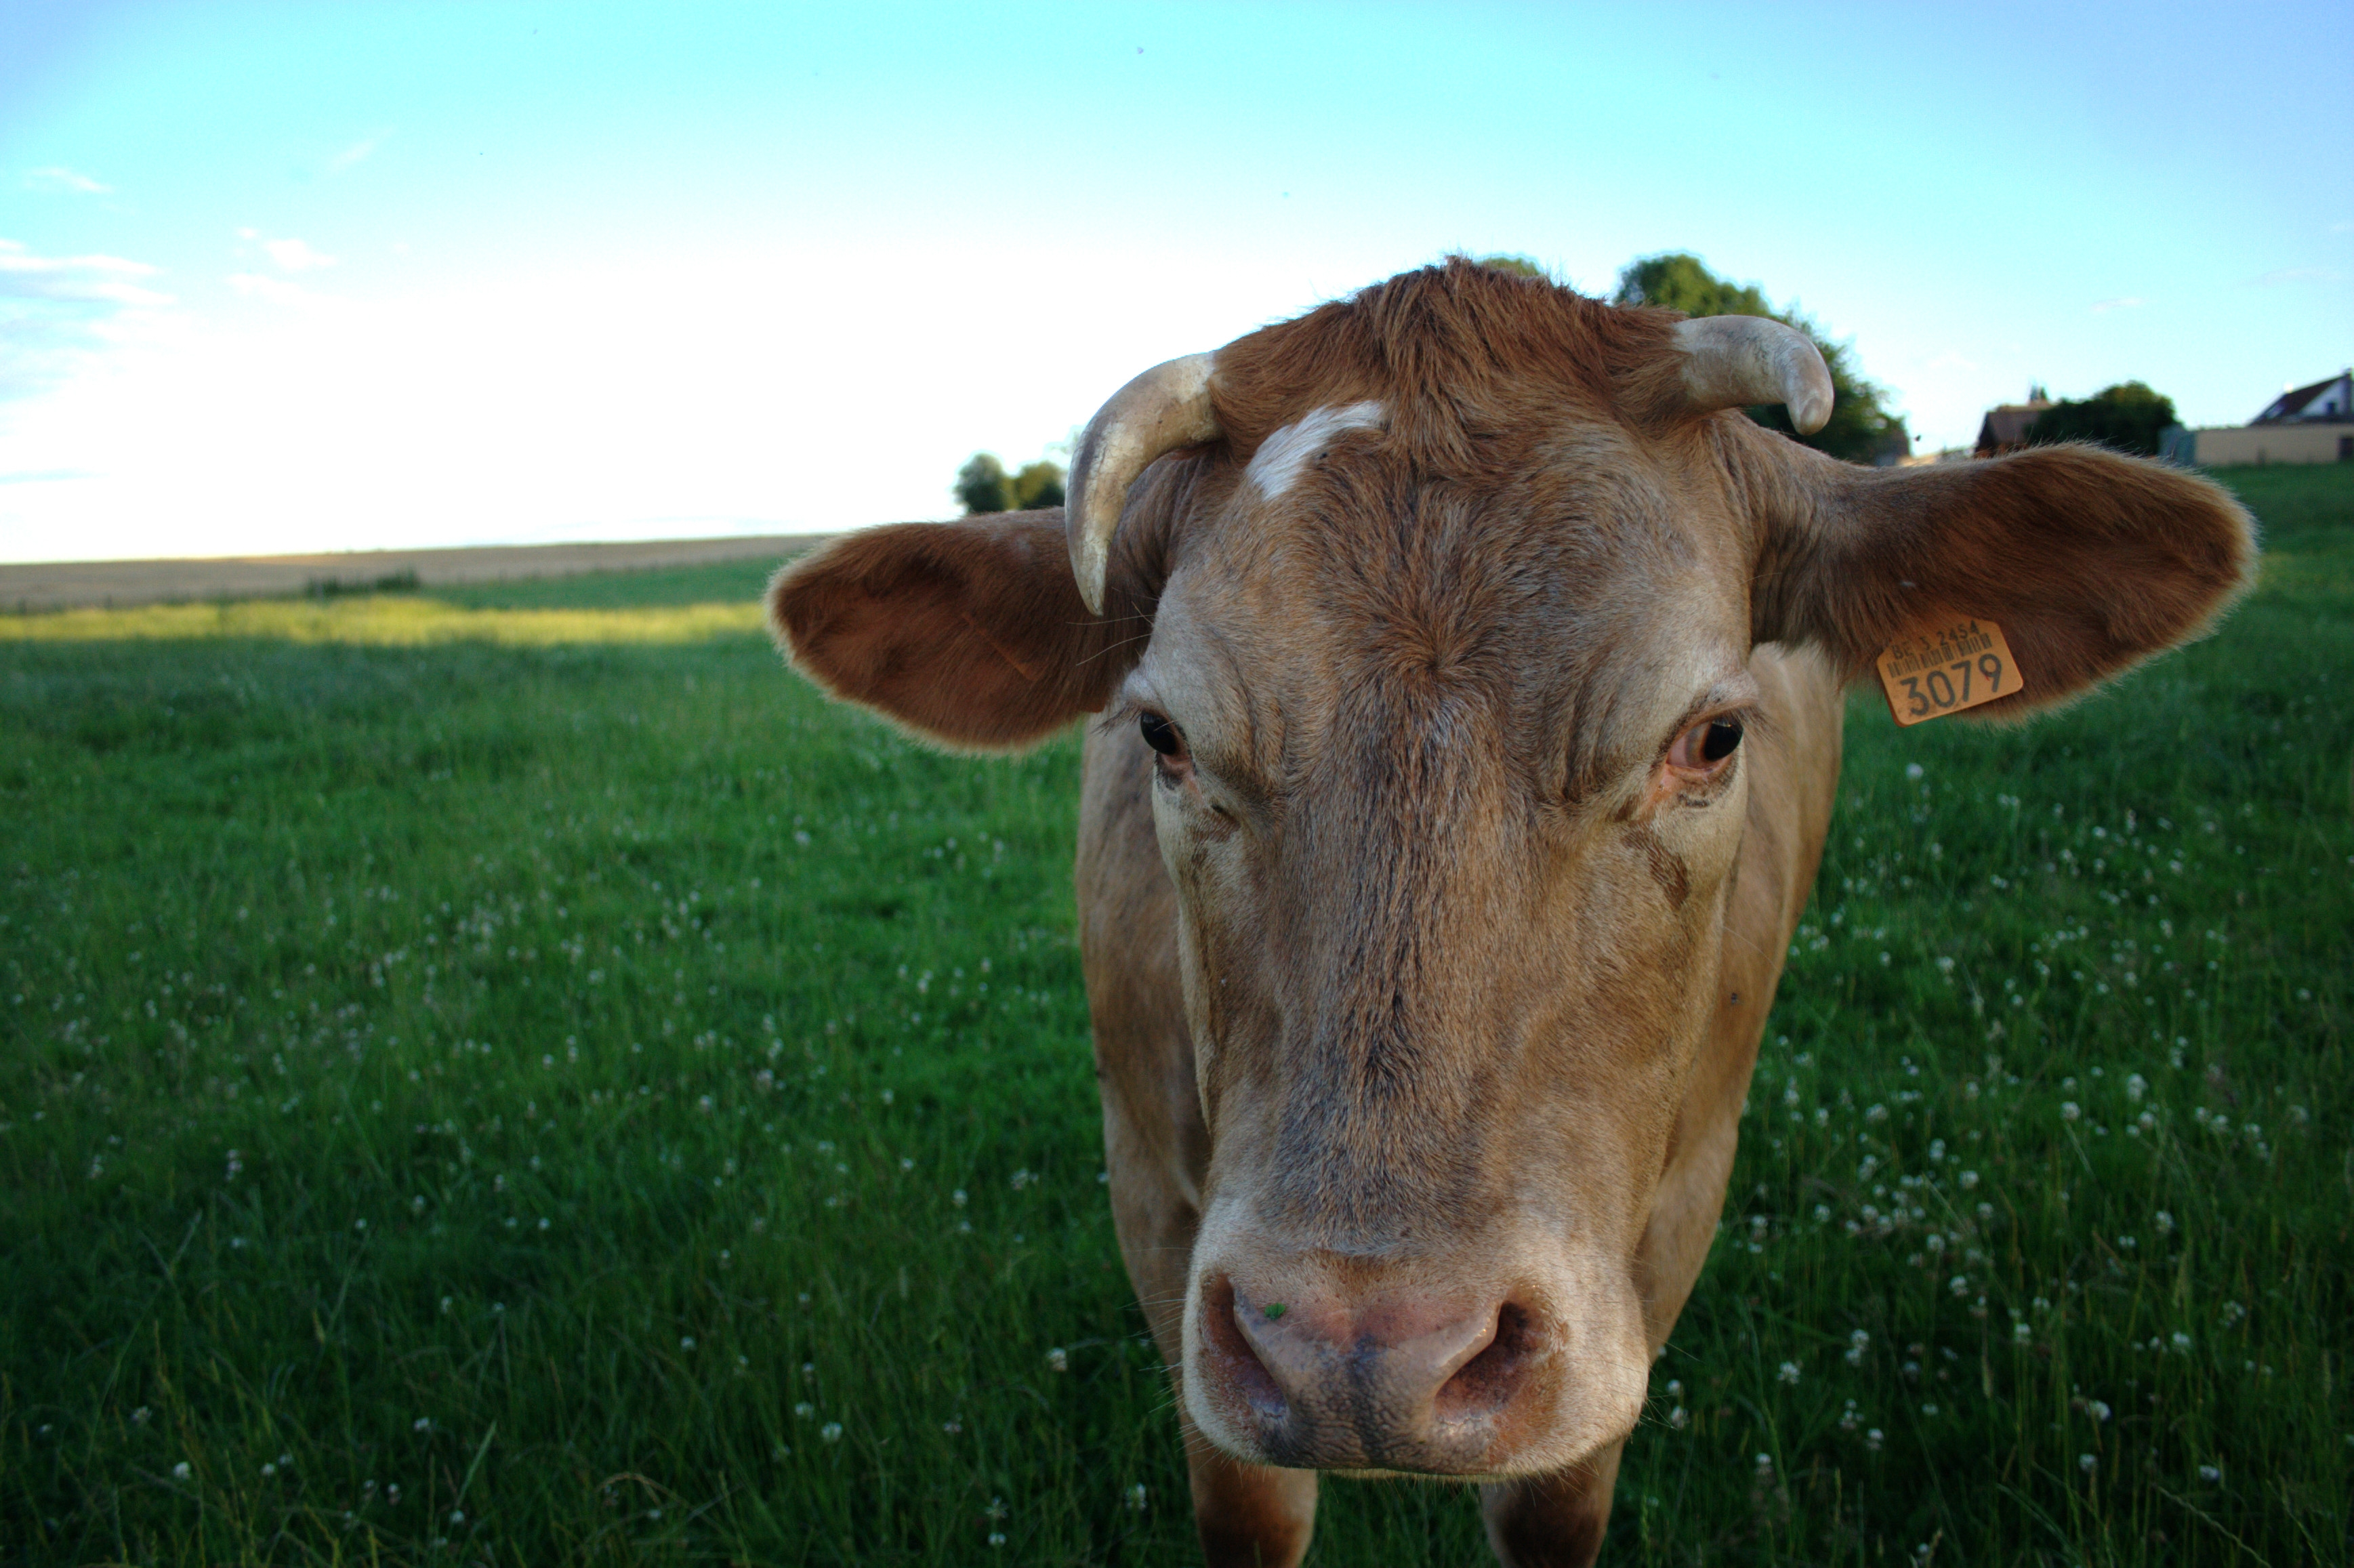 134881 download wallpaper Animals, Cow, Field, Meadow screensavers and pictures for free